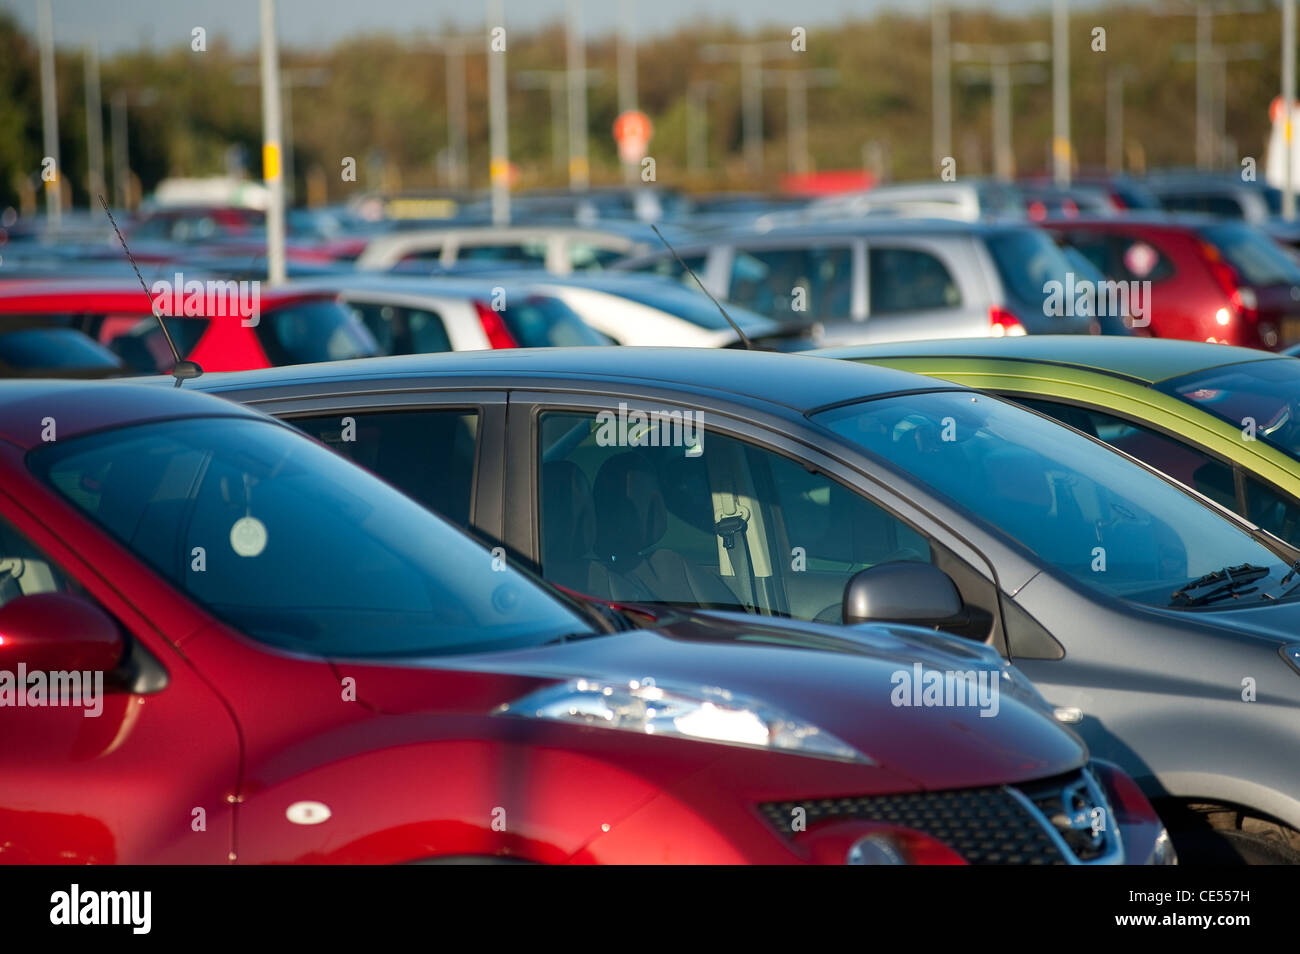 Vehicles parked in a very busy car park in England. - Stock Image